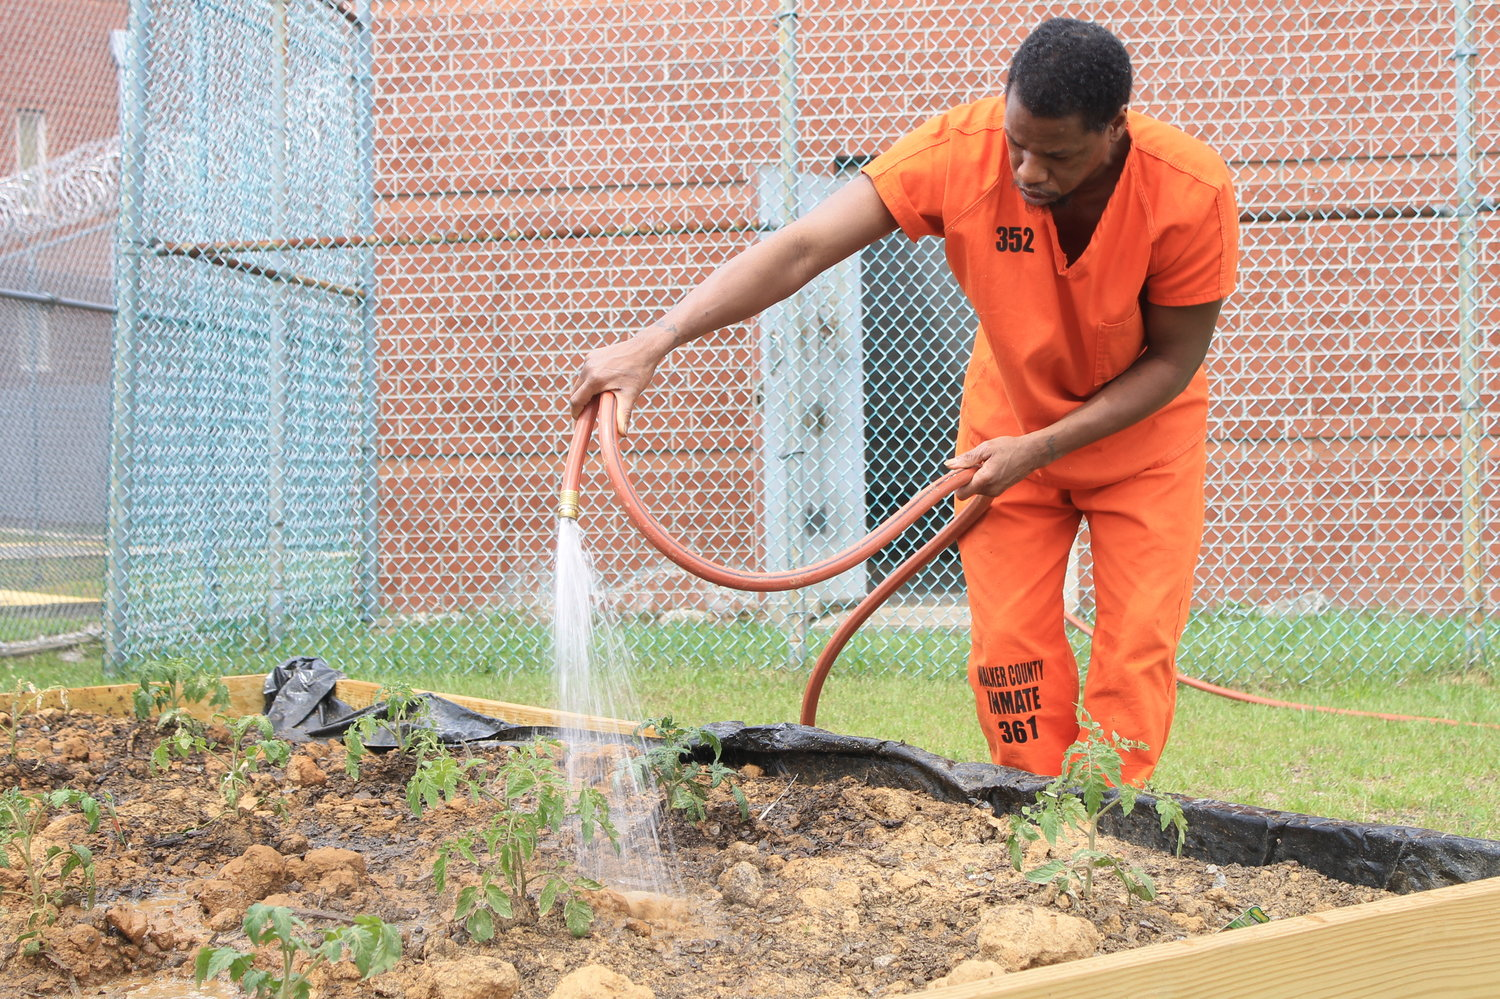 Kelvin Dixon waters tomato plants at Walker County Jail on Tuesday. Members of Desperation Church helped install nine raised bed gardens in a fenced area behind the jail during Passion Week. A variety of tomato and pepper plants were planted this week.